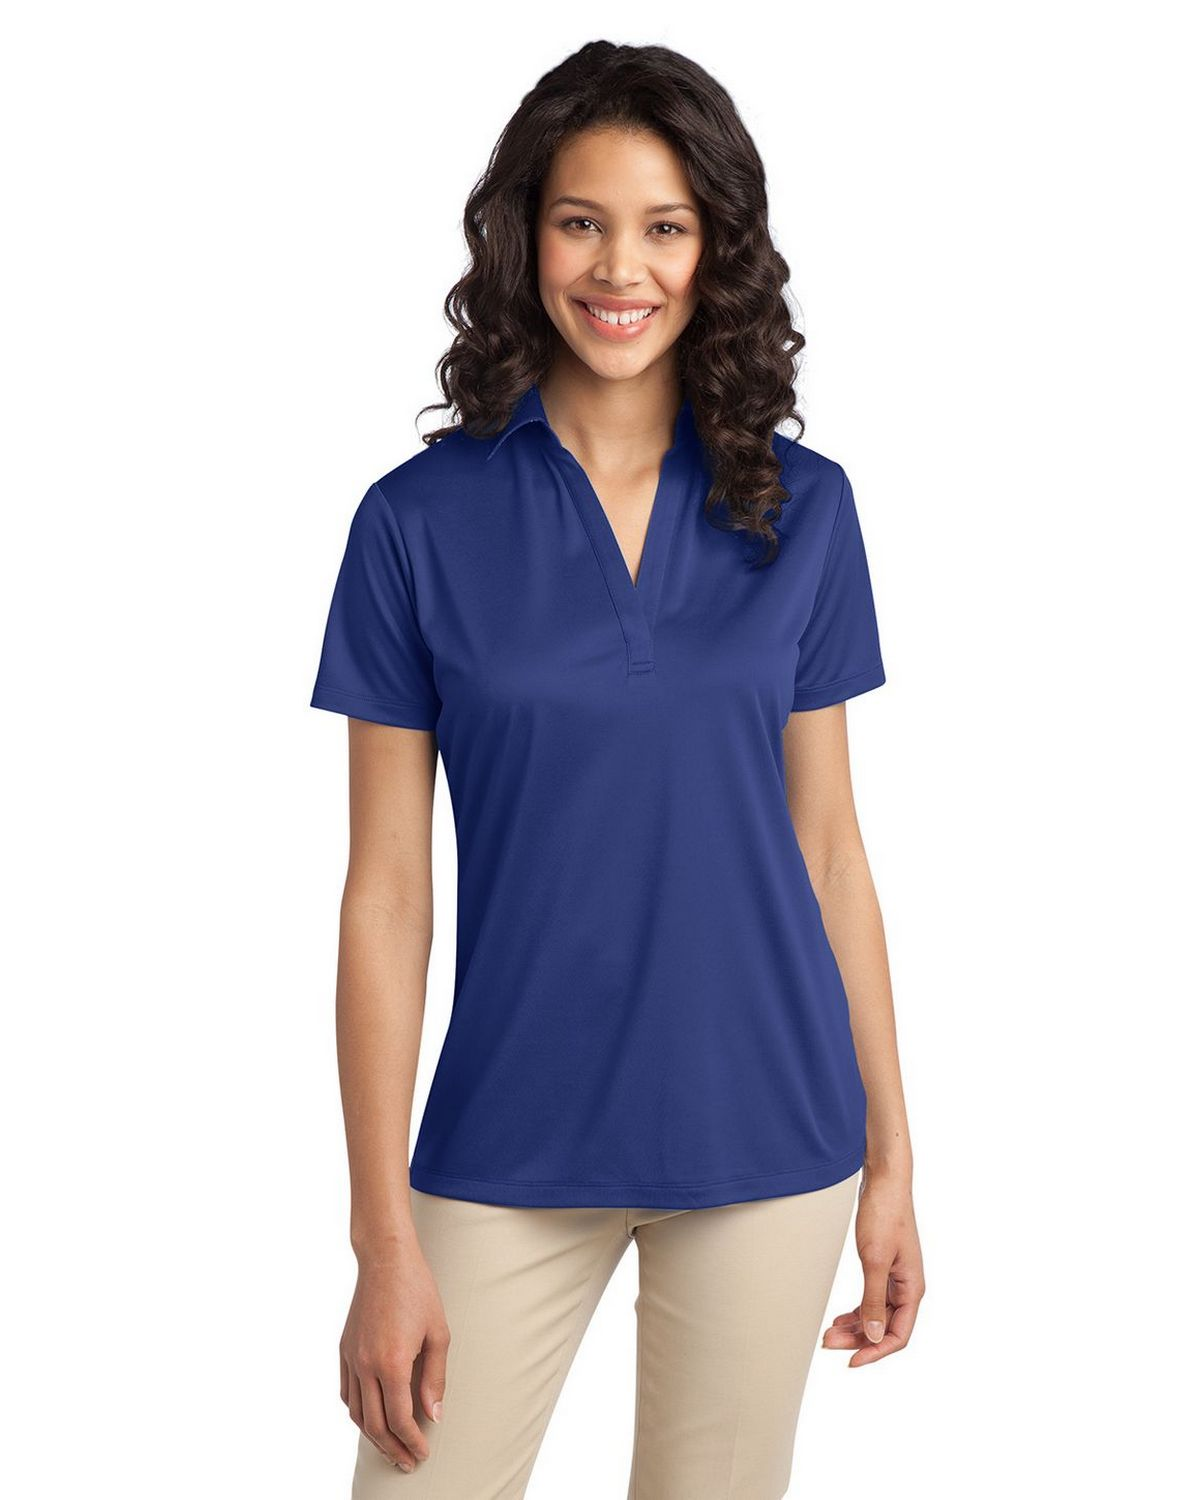 Port Authority L540 Women's Silk Touch Performance Polo - Royal - XS #silk